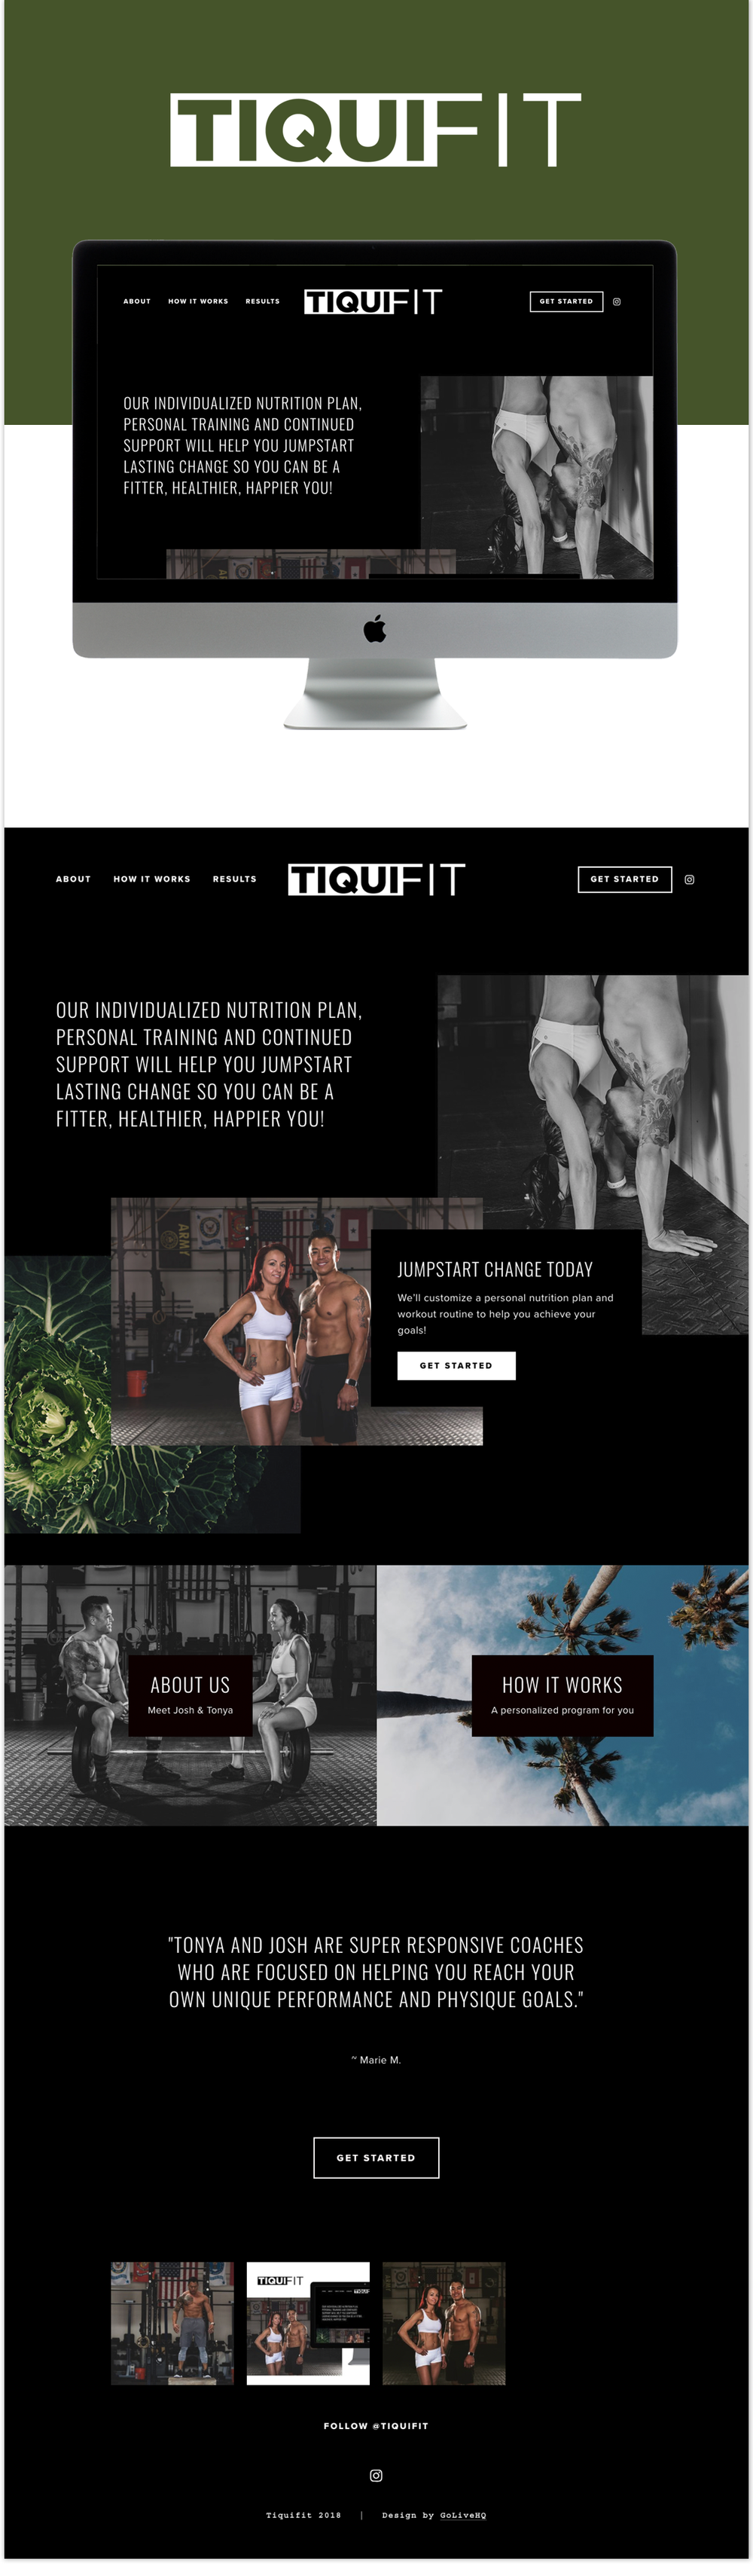 Brooklyn Squarespace Go Live Showit Squarespace Website Templates